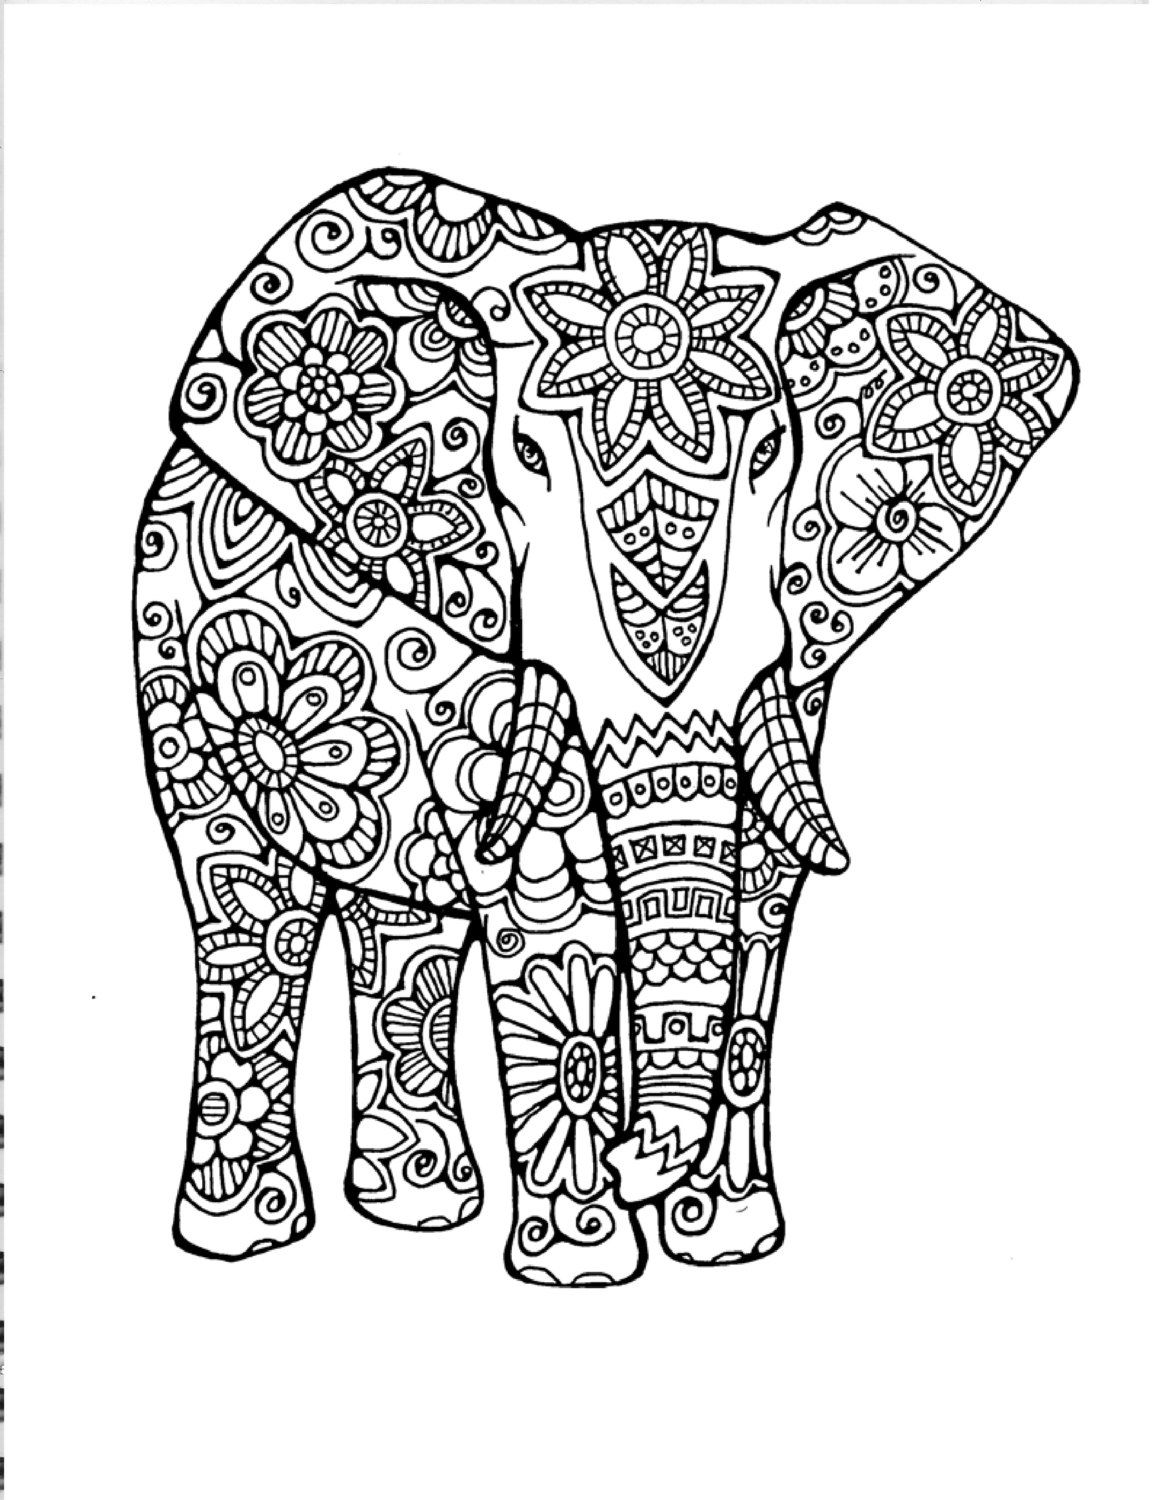 Adult Coloring Page Original Hand Drawn Art By Littleshoptreasures